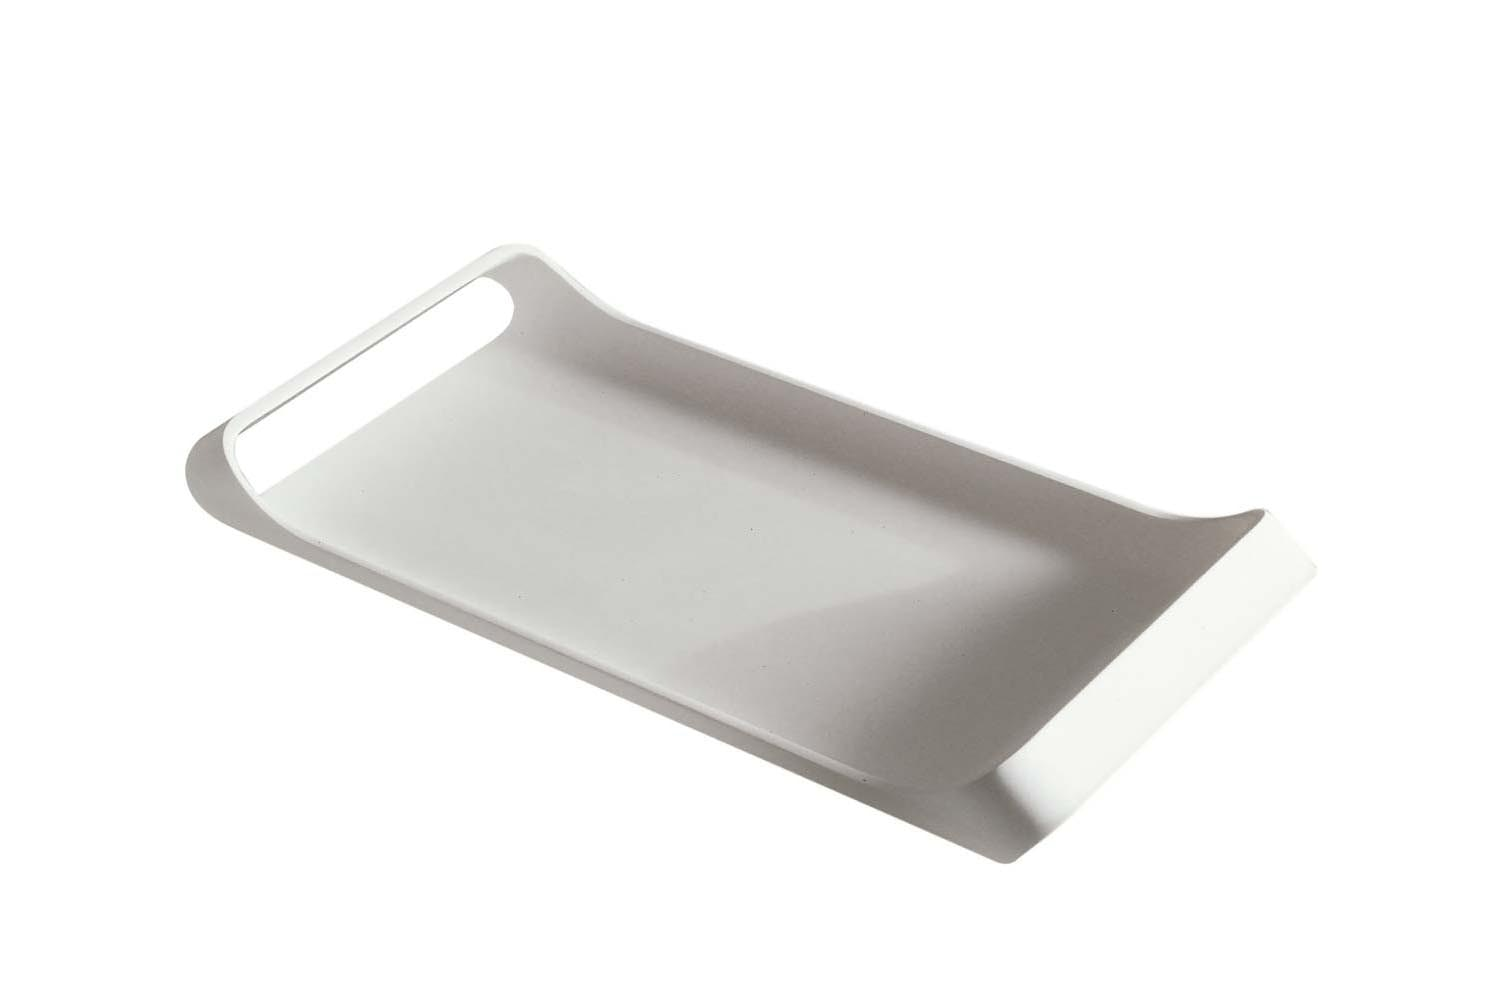 Loop Medium Tray by Jakob Wagner for B&B Italia